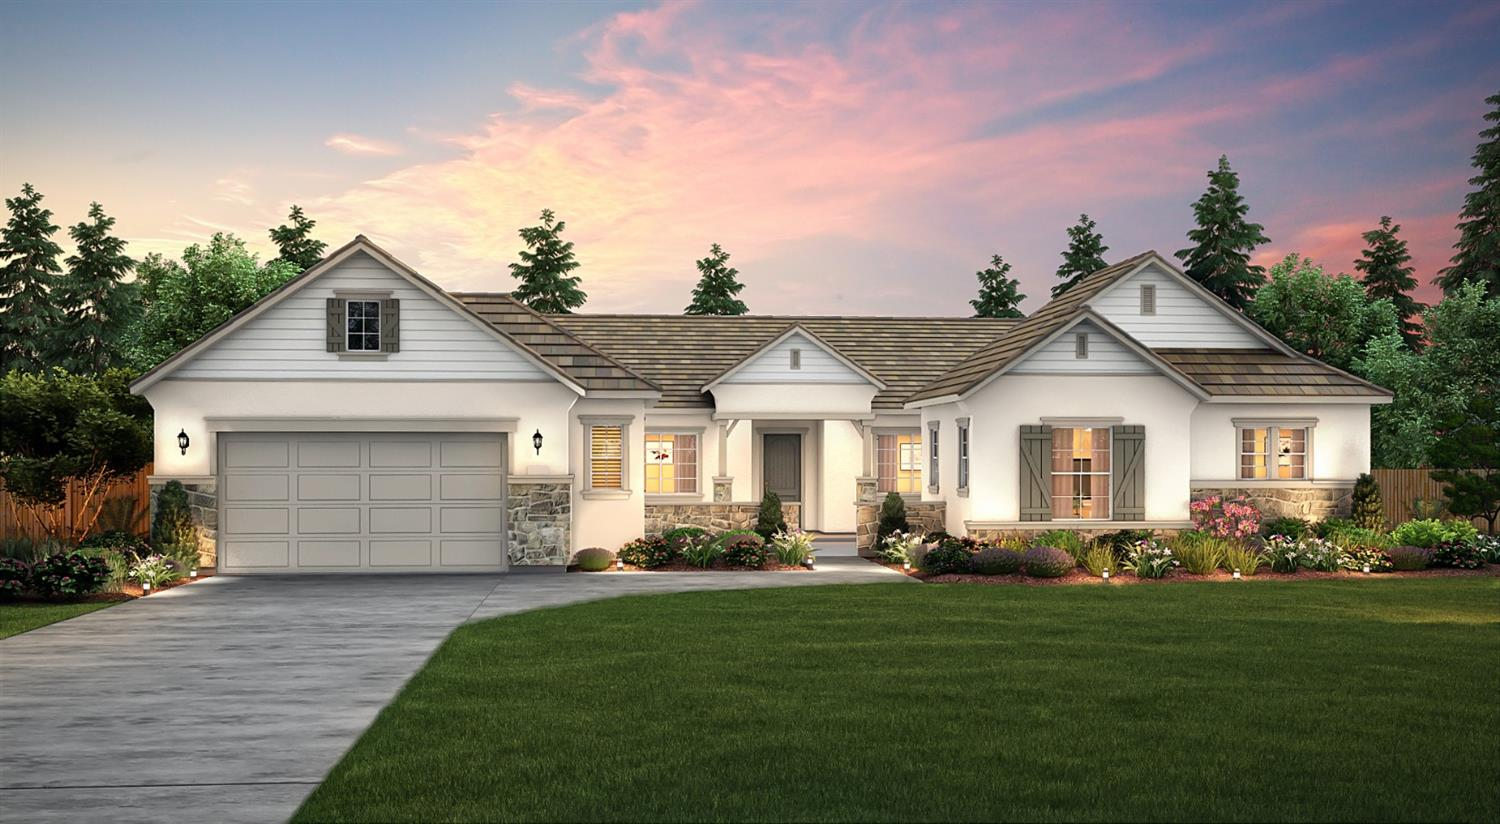 Bella Palma in Kerman.  This beautiful new construction Meadow floor plan offers an open floor plan, with a spacious kitchen featuring granite, maple cabinets in a truffle finish, and Venetian bronze hardware, stainless appliances, a large center island, a walk in pantry, a formal dining room, large great room, and den with French doors.  The spacious master suite offers a large walk in closet, dual sink with granite vanity, soaking tub, and dual showerheads.  The additional 3 bedrooms are generously sized to fit your family's needs.  The large covered patio is perfect for entertaining or relaxing after a long days work.  Don't forget this home offers a 4 car tandem garage!